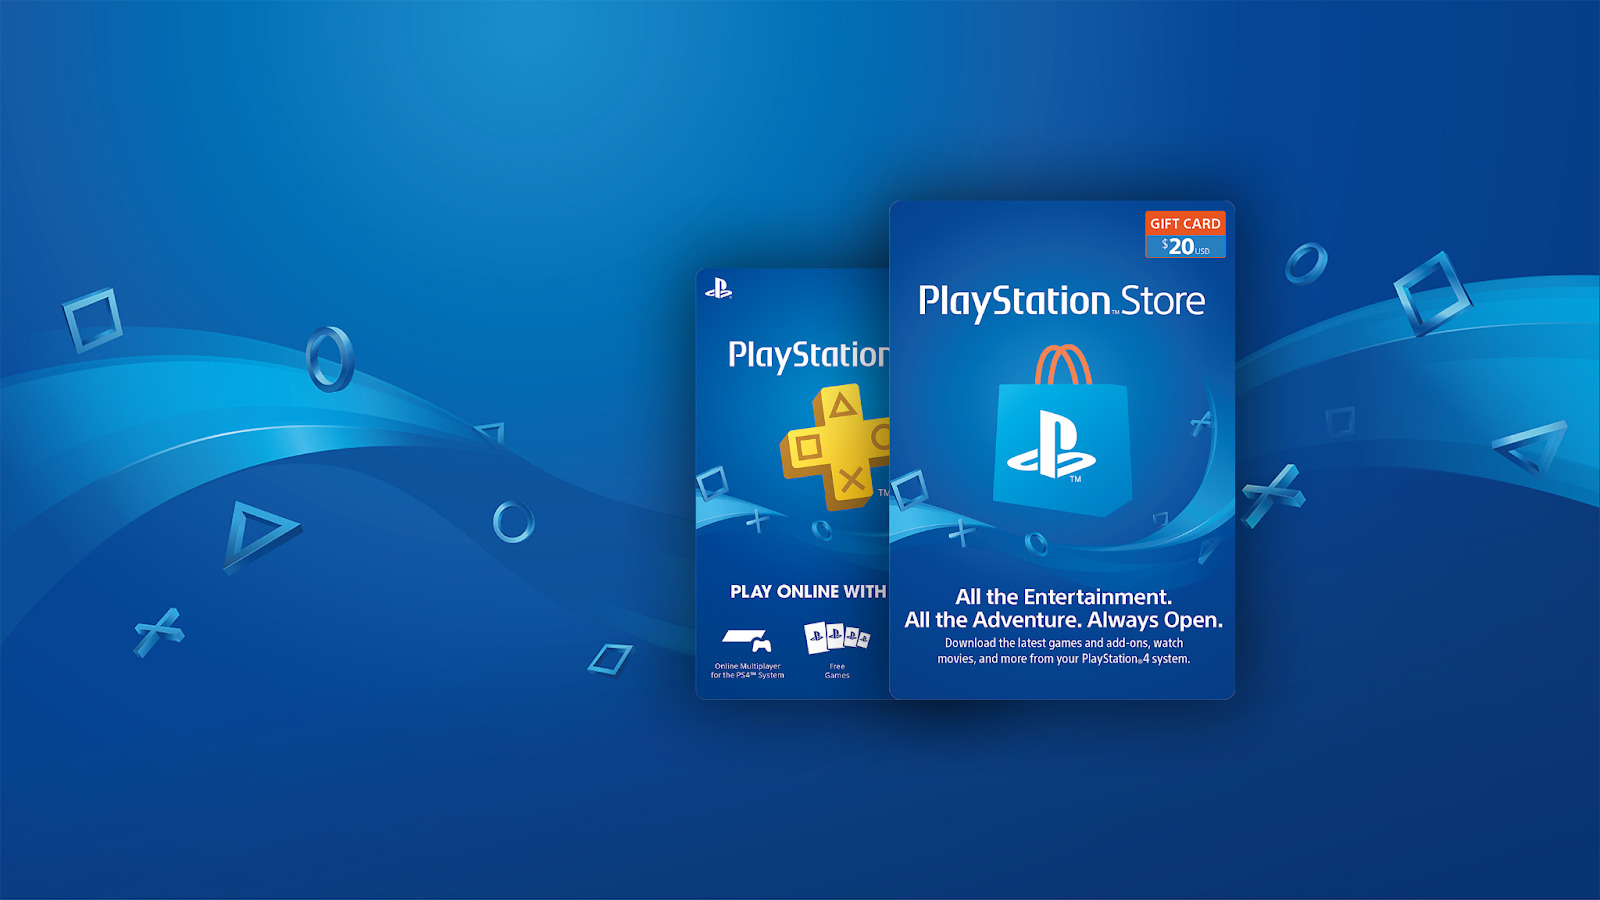 BEST PRICE FOR PLAYSTATION STORE GIFT CARDS